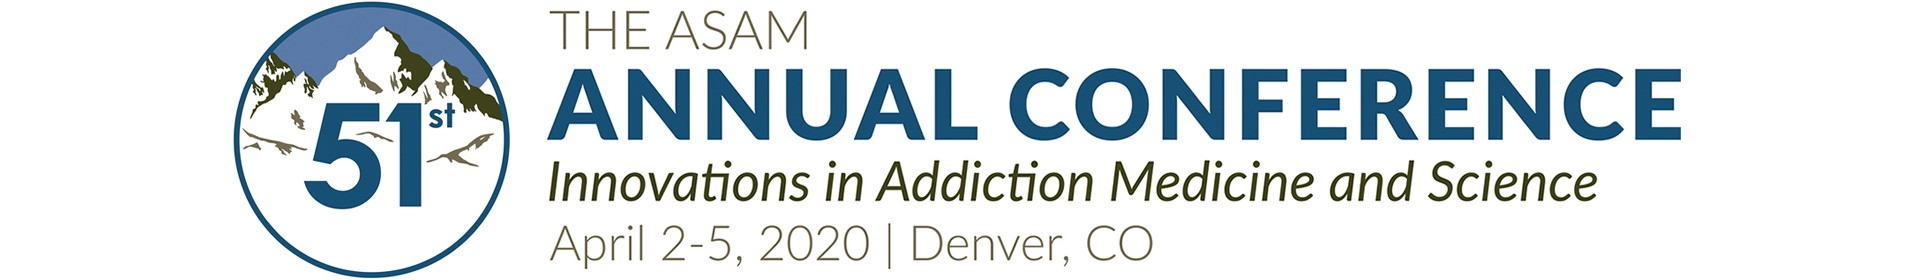 ASAM 51st Annual Conference - 2020 Event Banner